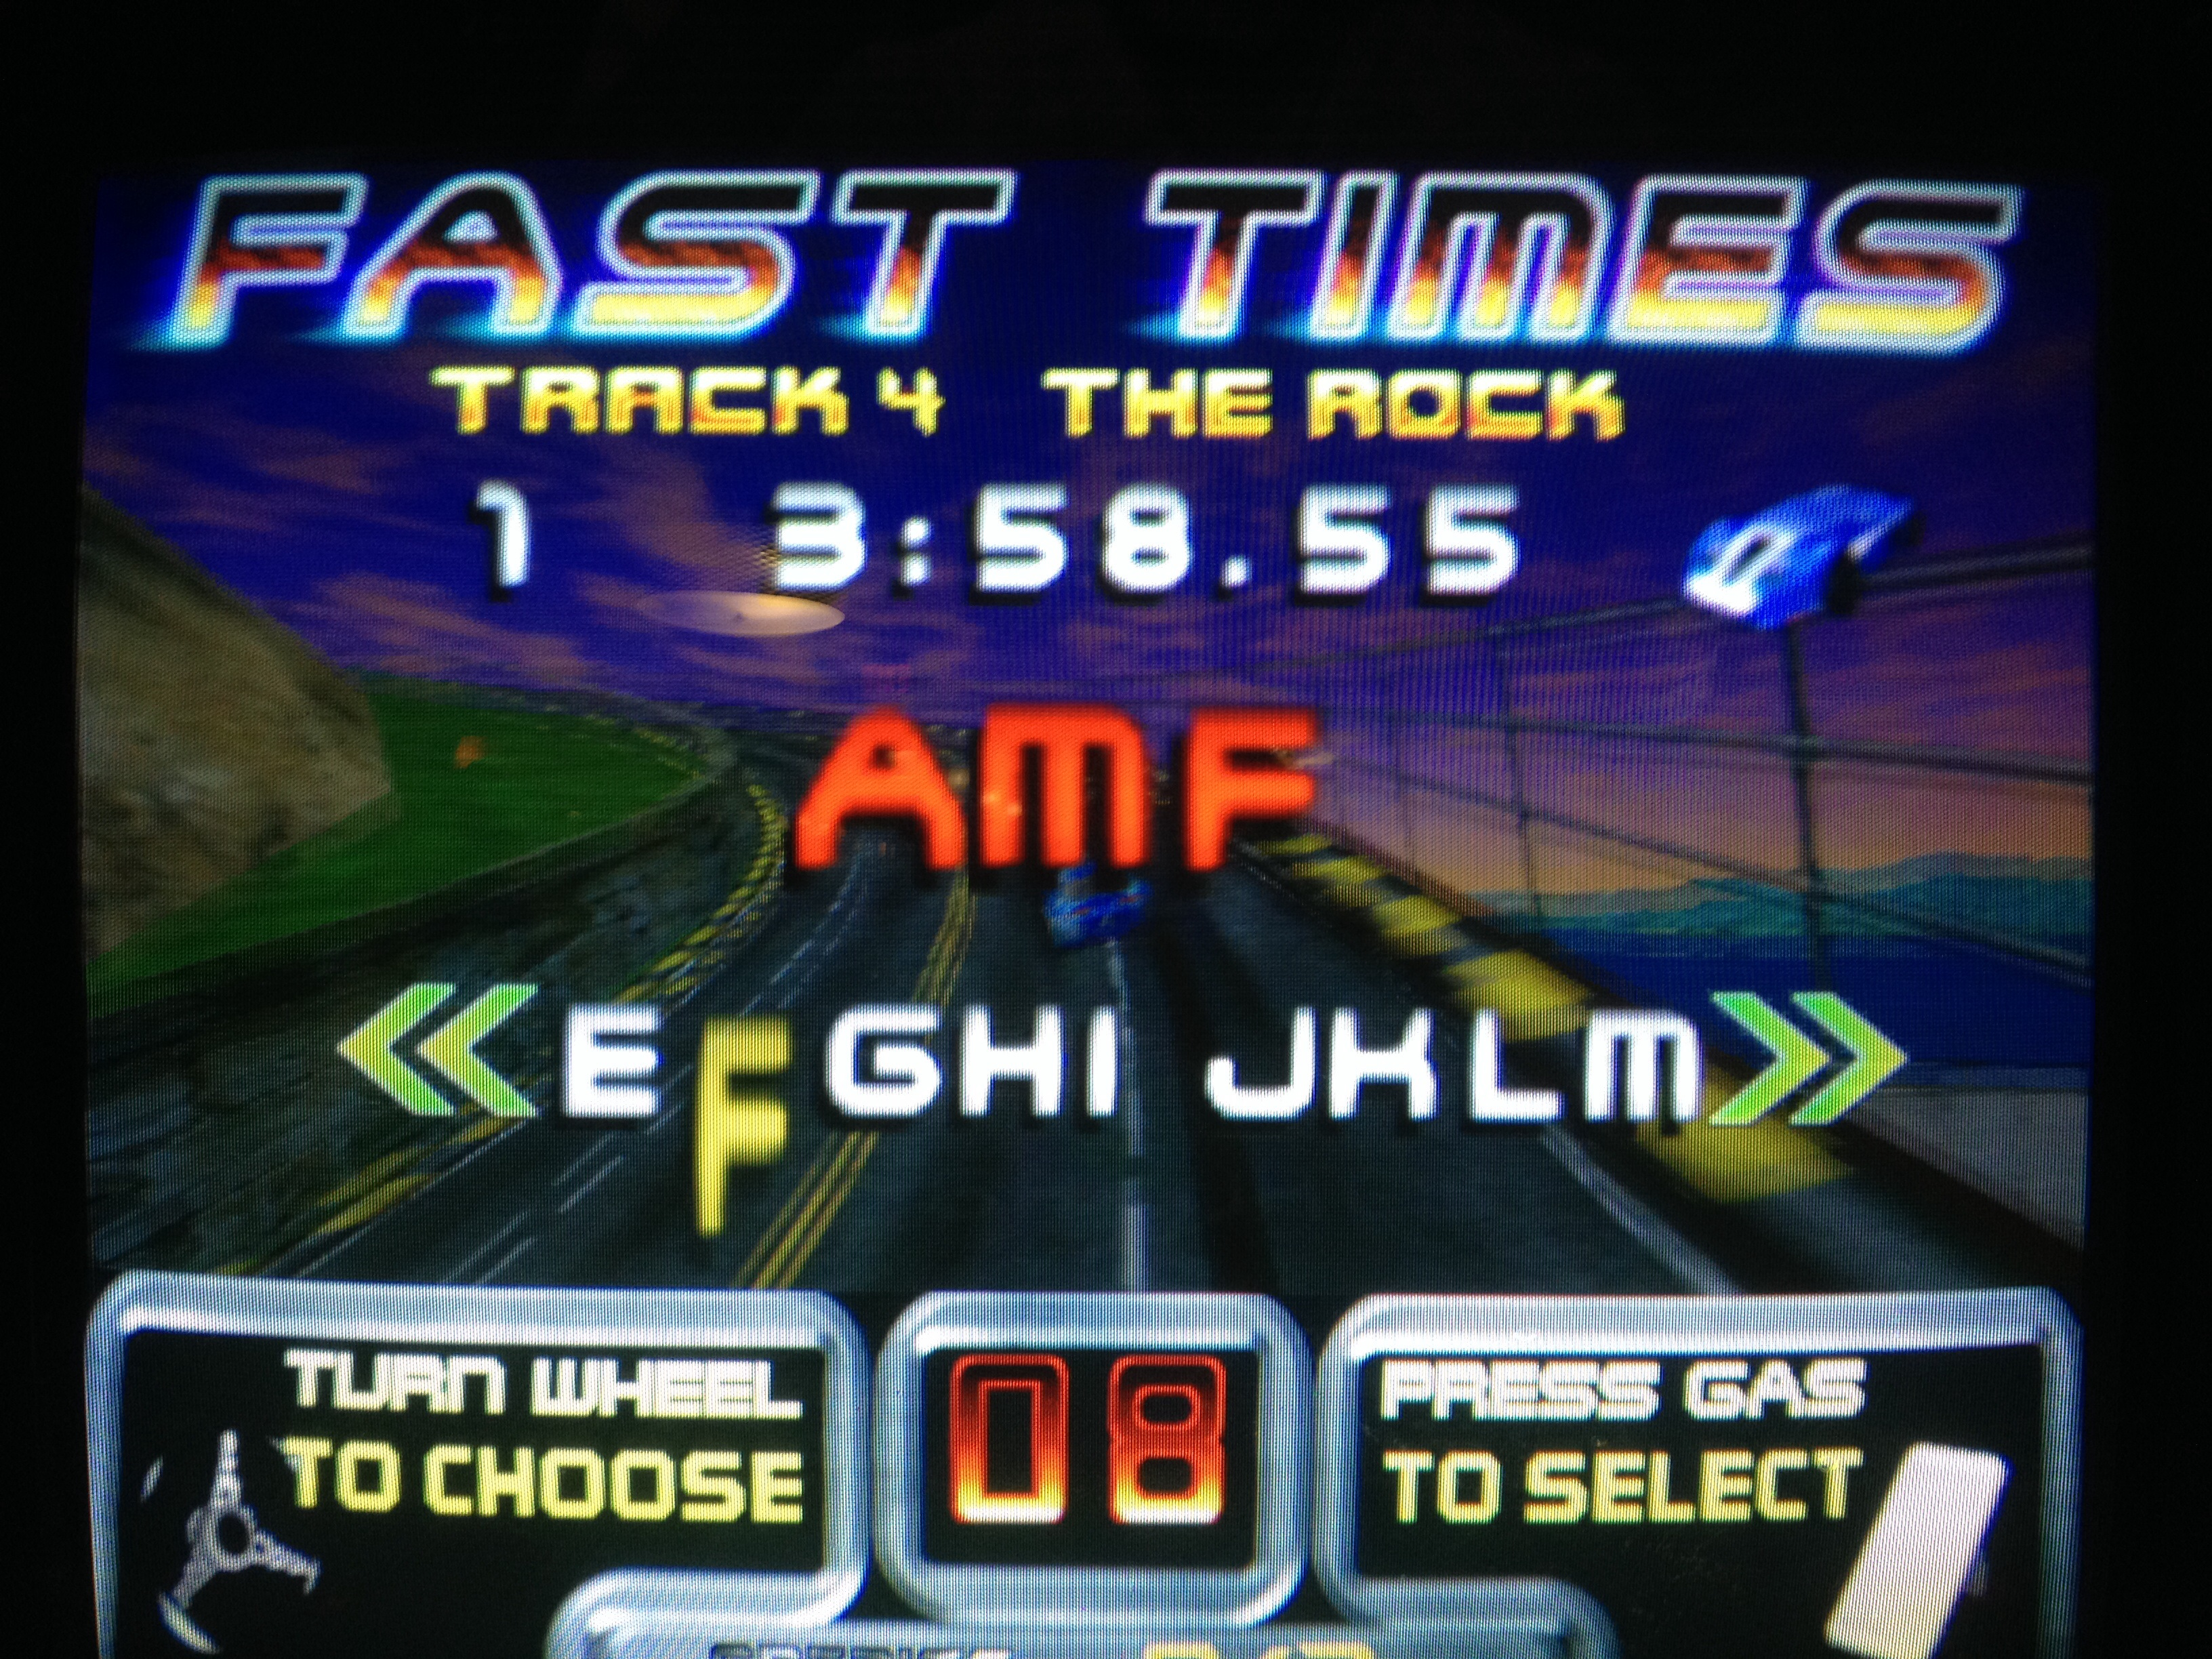 FosterAMF: San Francisco Rush: The Rock [Track 4] (Arcade) 0:03:58.55 points on 2014-06-13 13:12:38